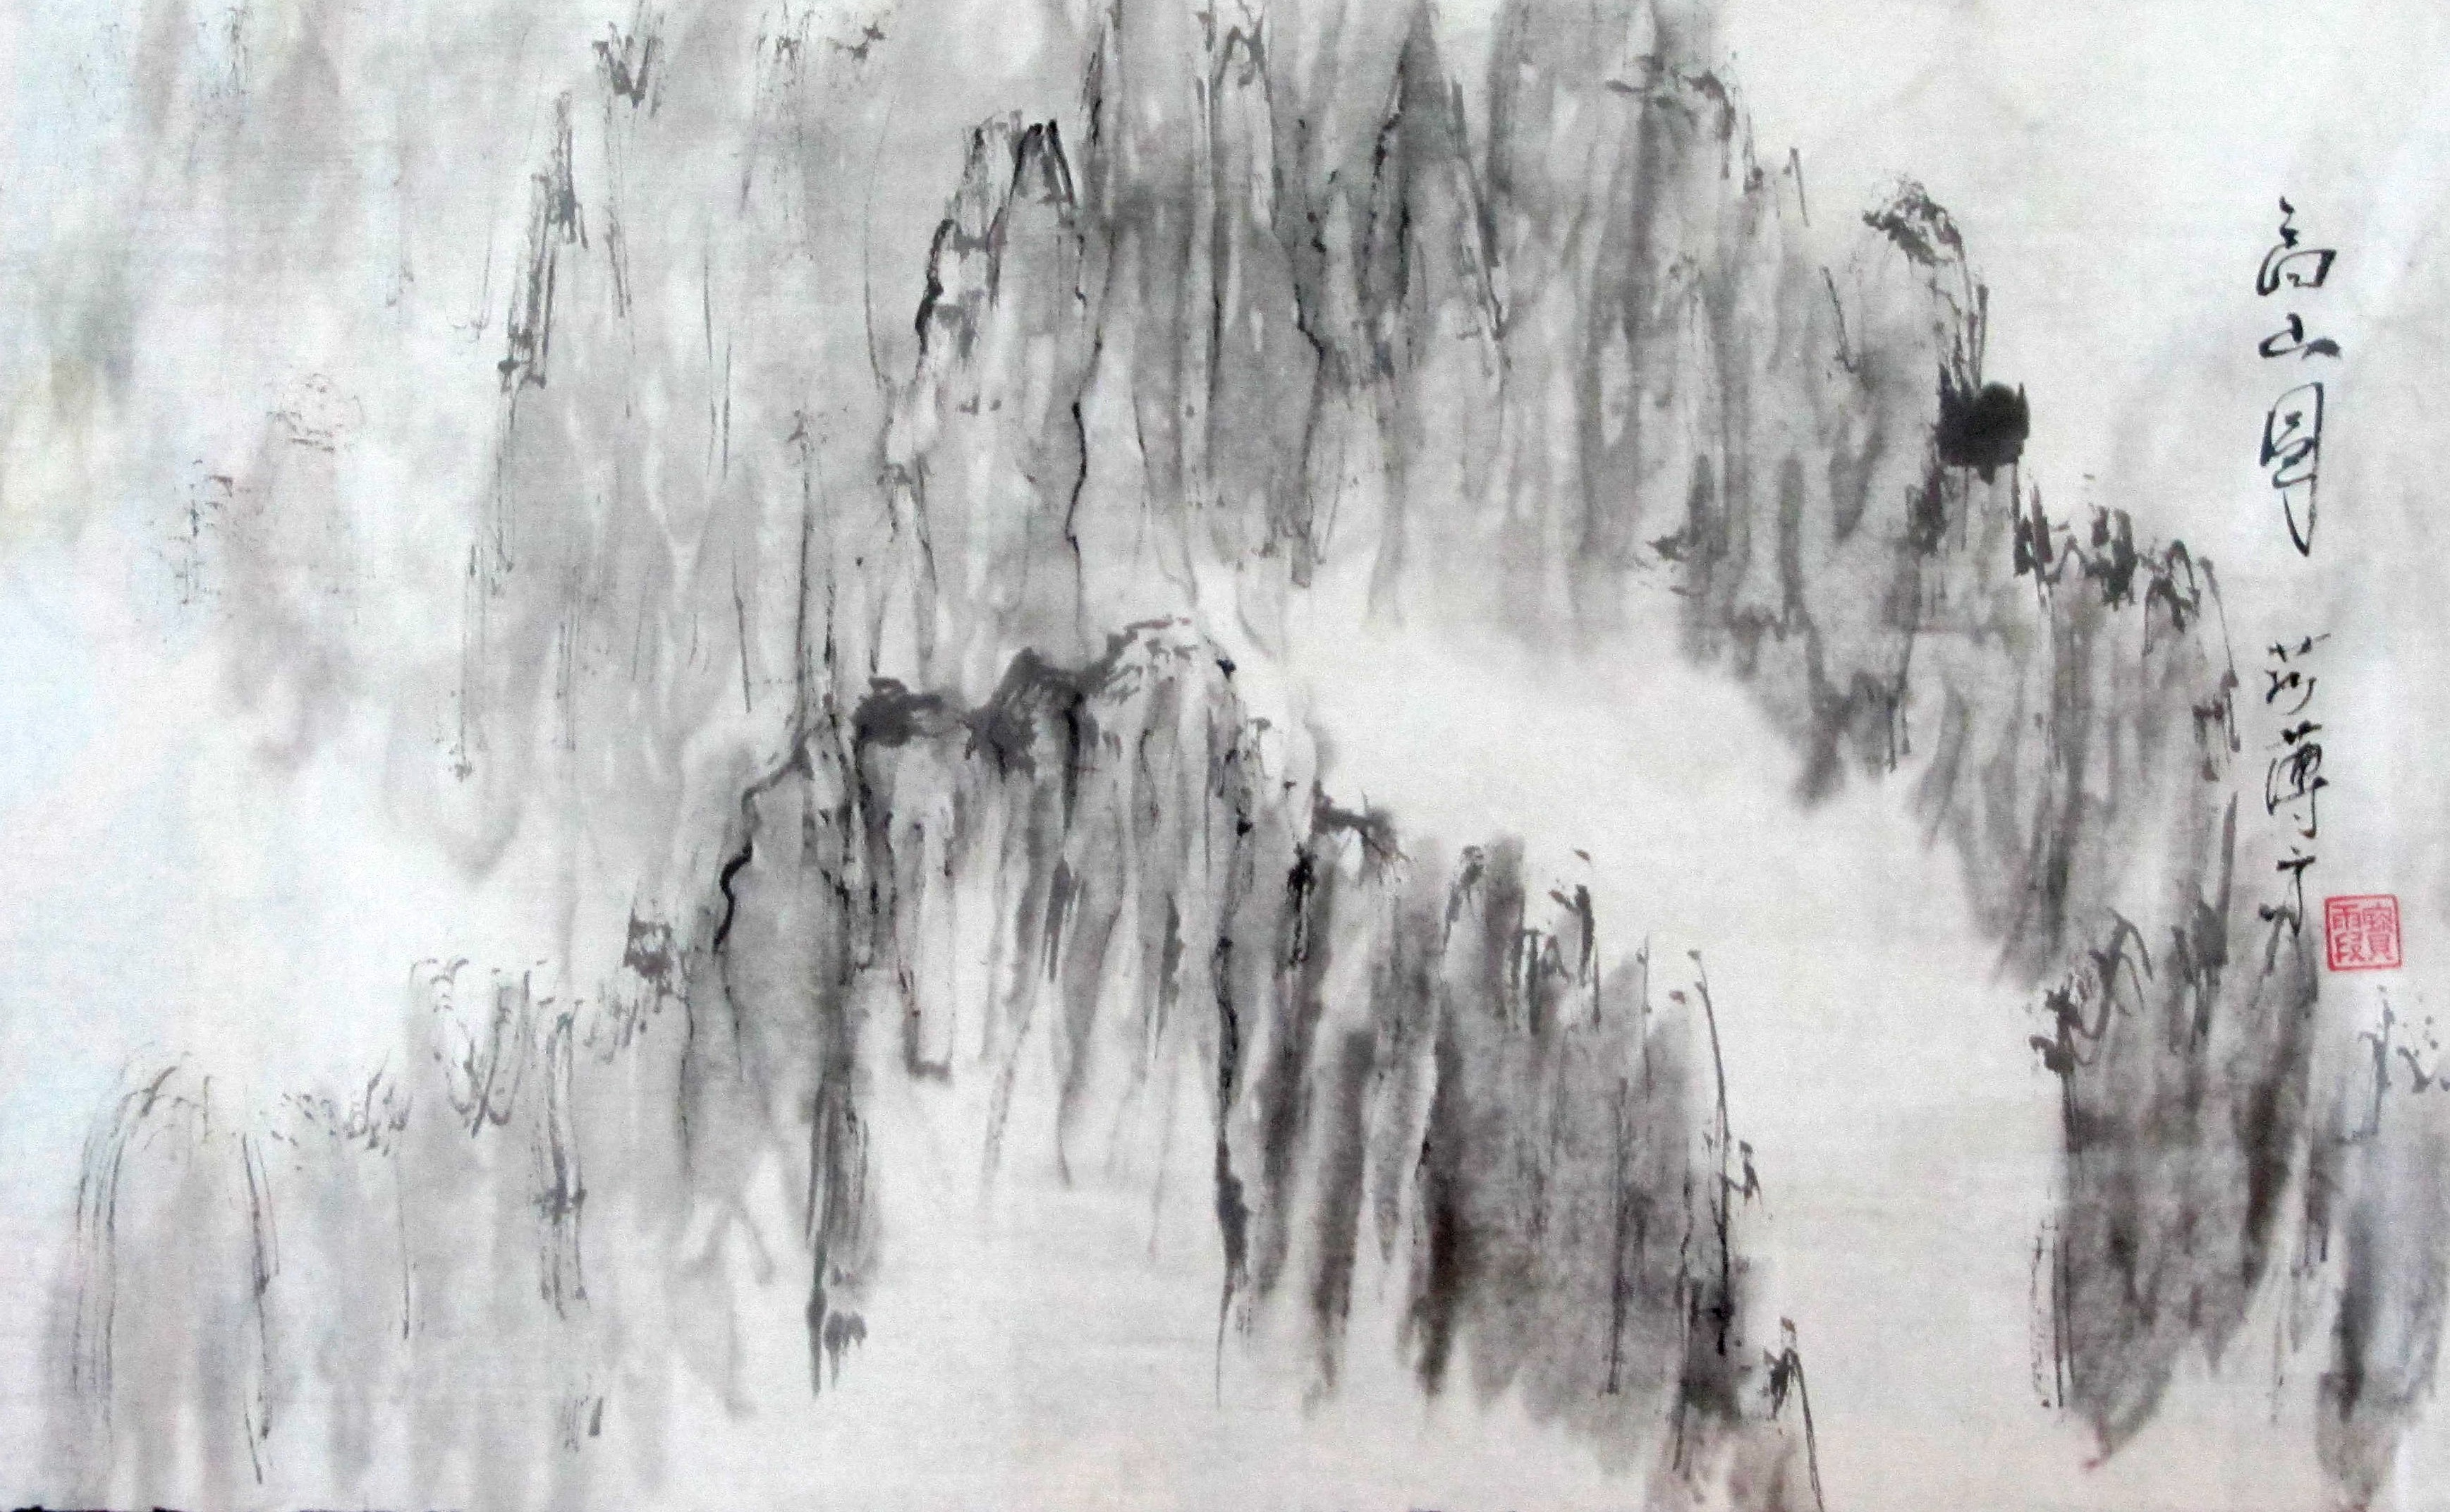 Mysterious Mountains in Mist